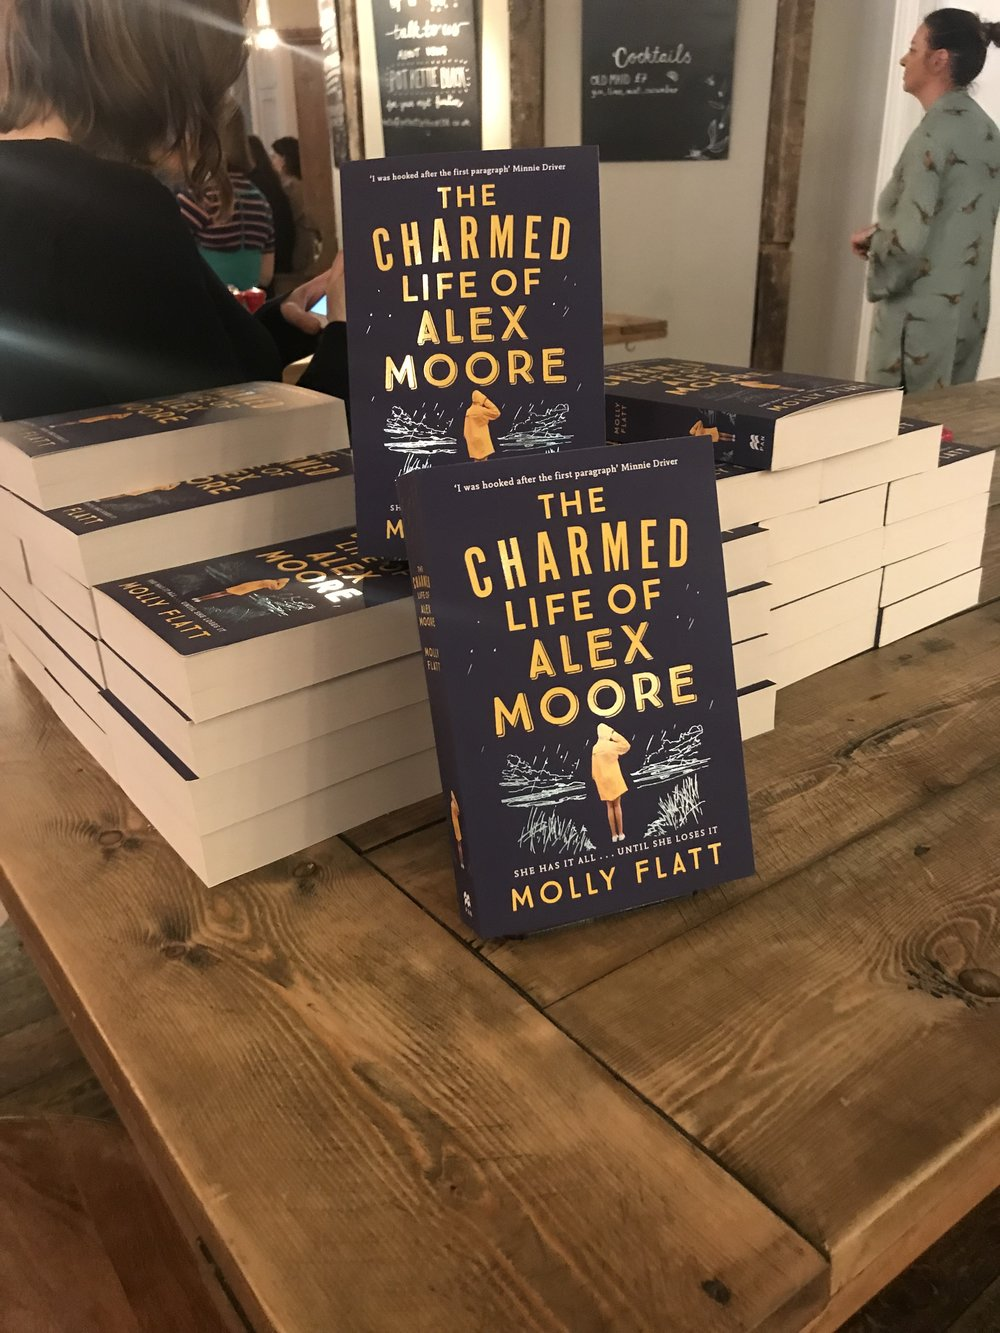 Molly Flatt's debut novel, The charmed life of Alex Moore published by Pan Macmillan